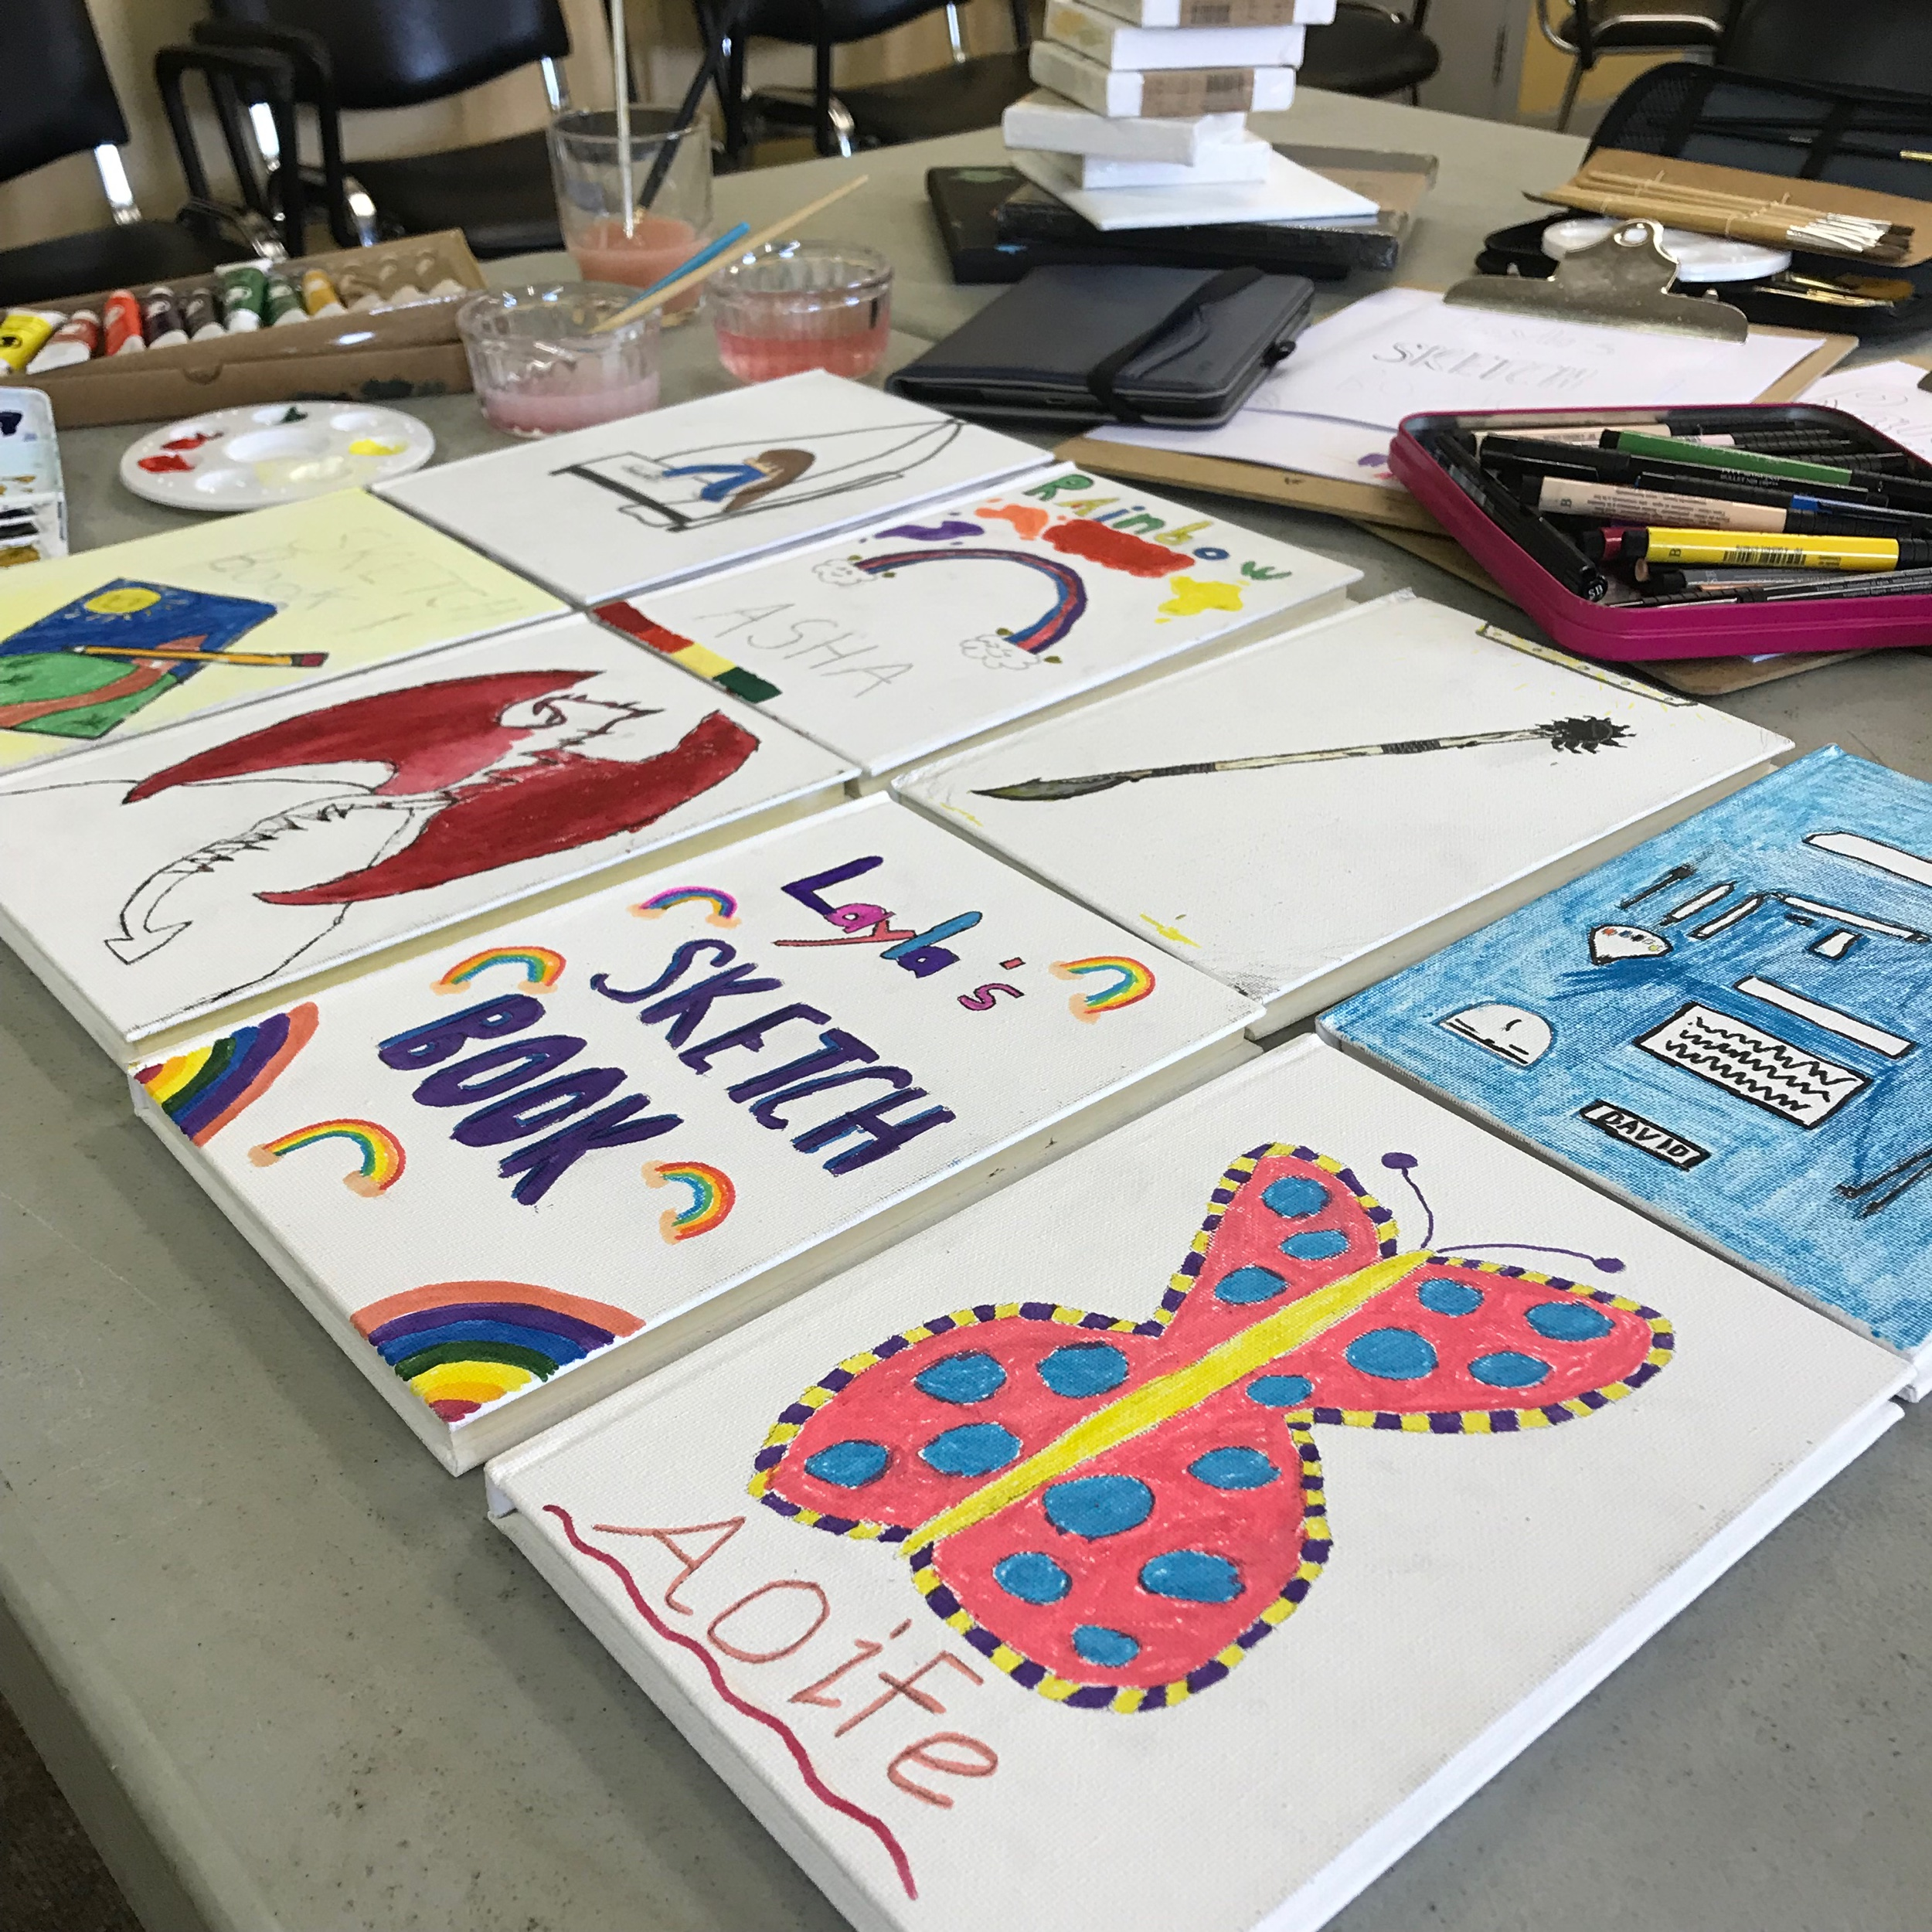 Summer Course Sketchbooks  - Personalised sketchbooks for recording our ideas and observations